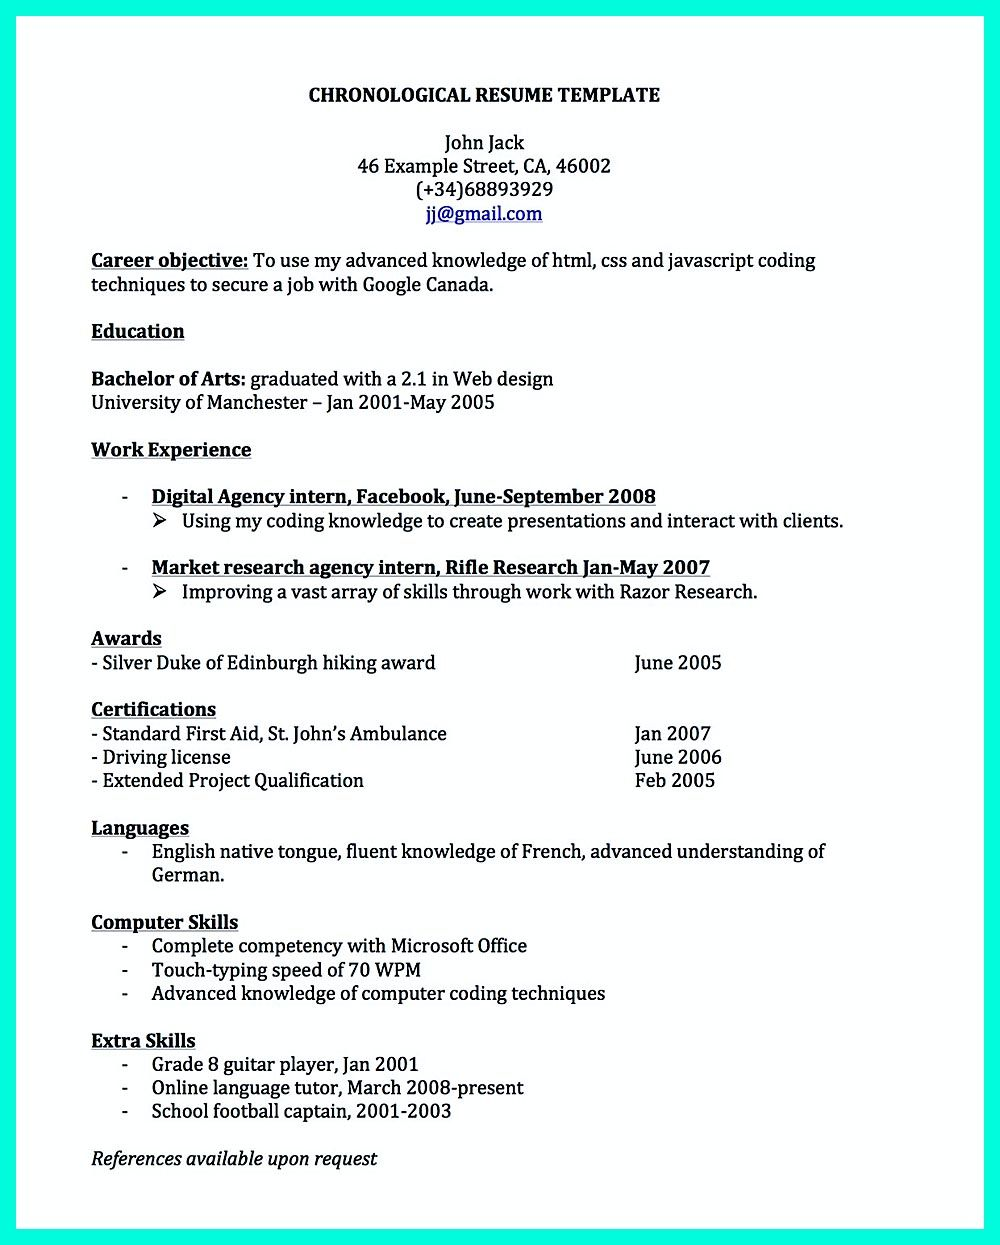 chronological resume is needed by people in making them understand how to write good resume in good order it is the most commonly applied format of r - How To Write Good Resume